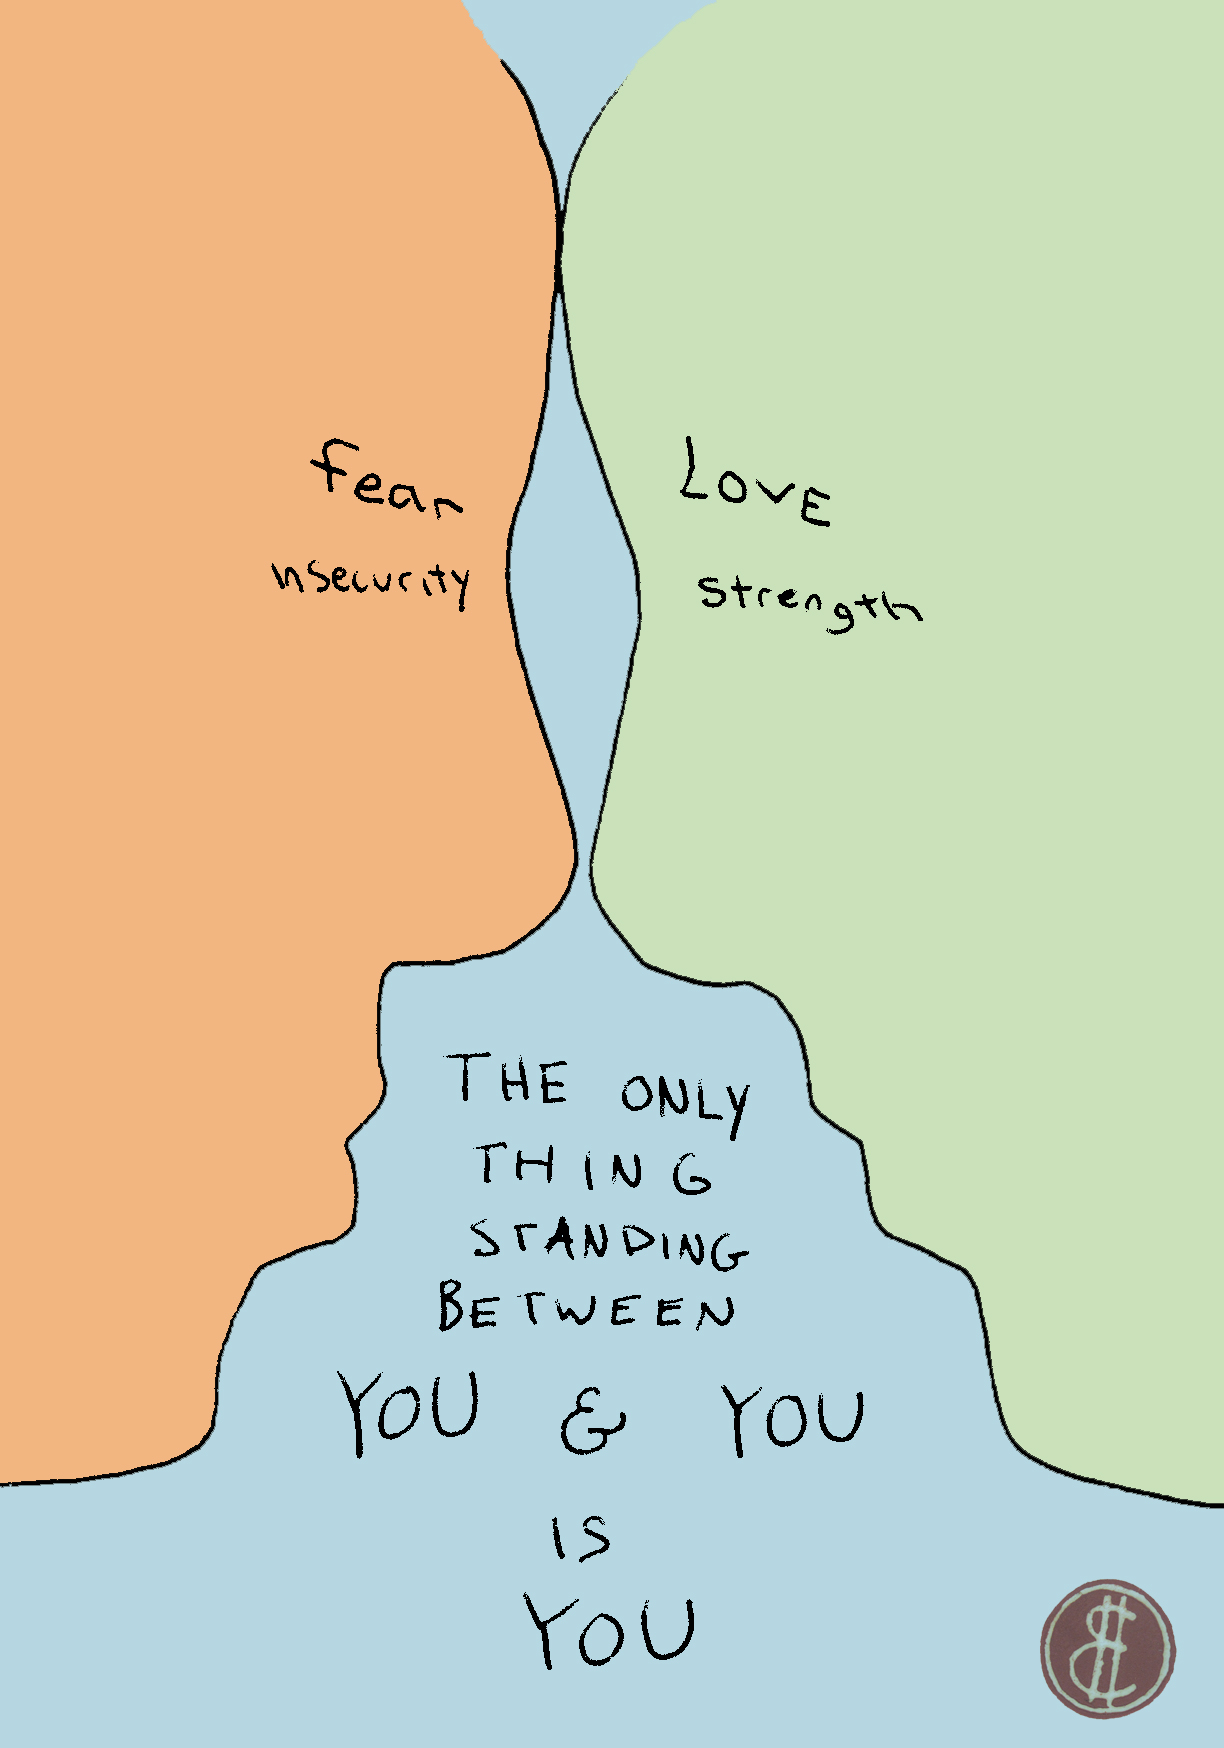 You and you